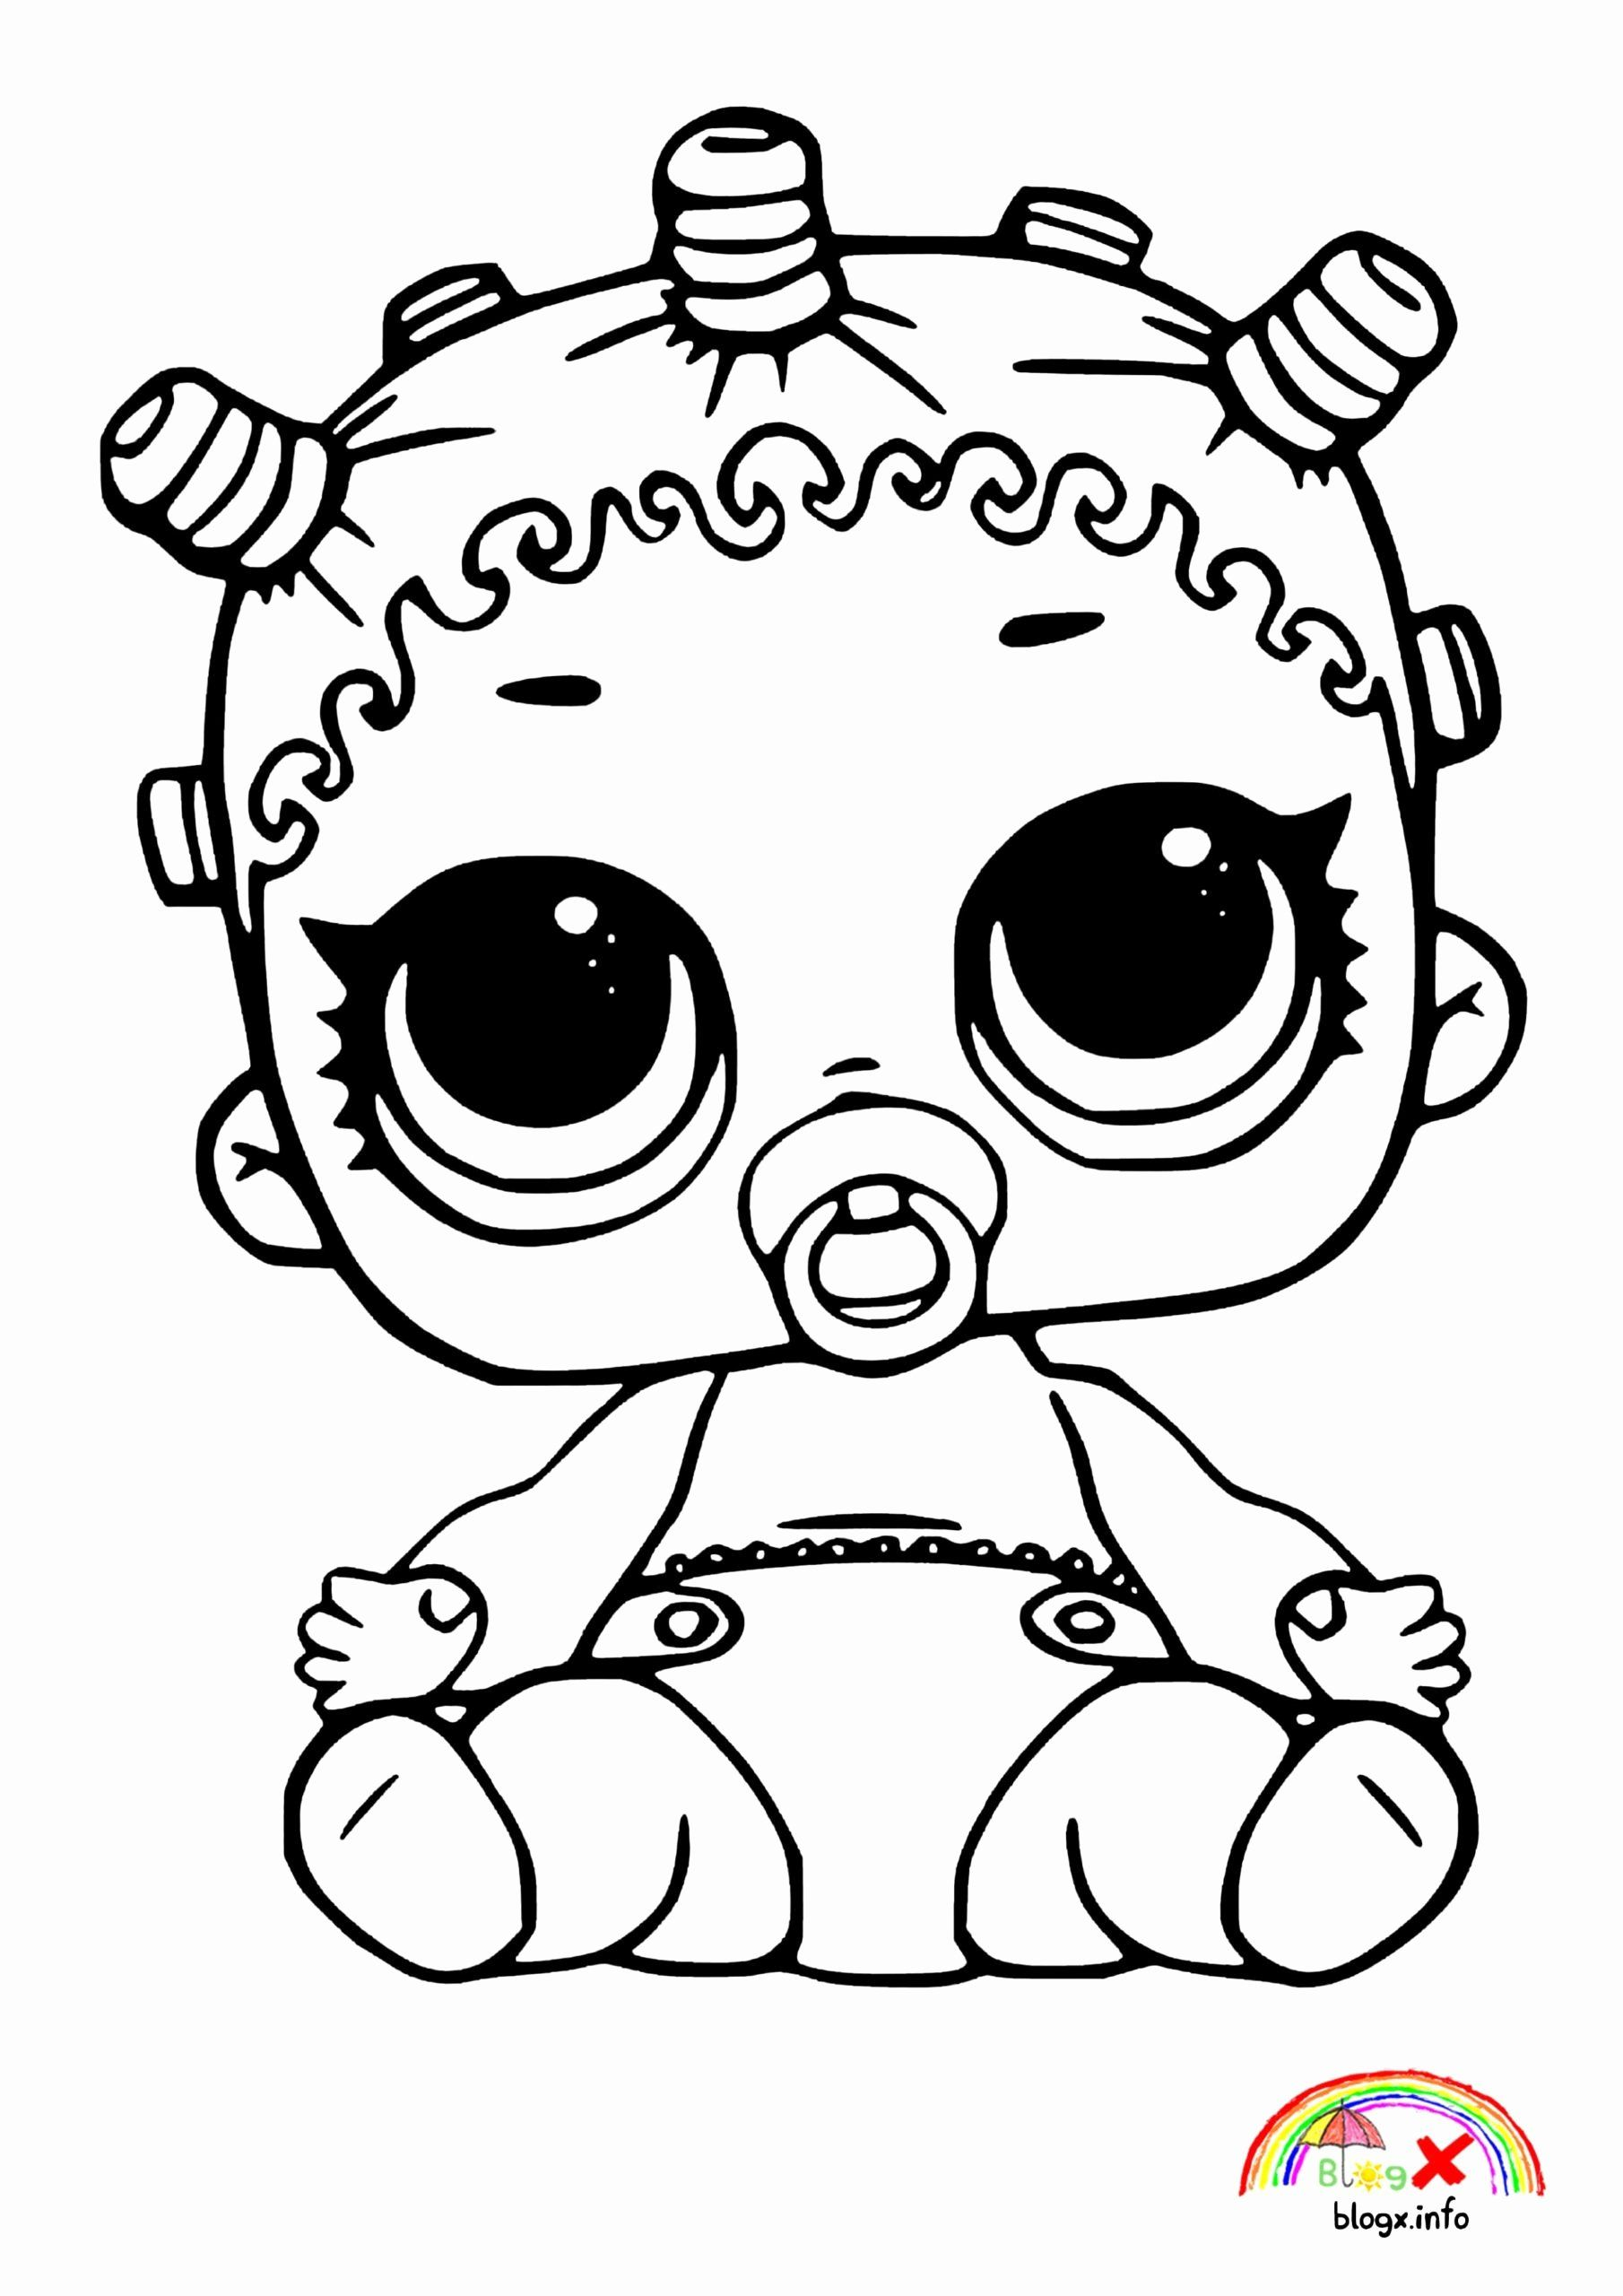 Coloring Book For Baby Beautiful Coloring Pages Pin By Coloring Book Blogx Lol Cute In 2020 Toddler Coloring Book Coloring Pages Cute Coloring Pages